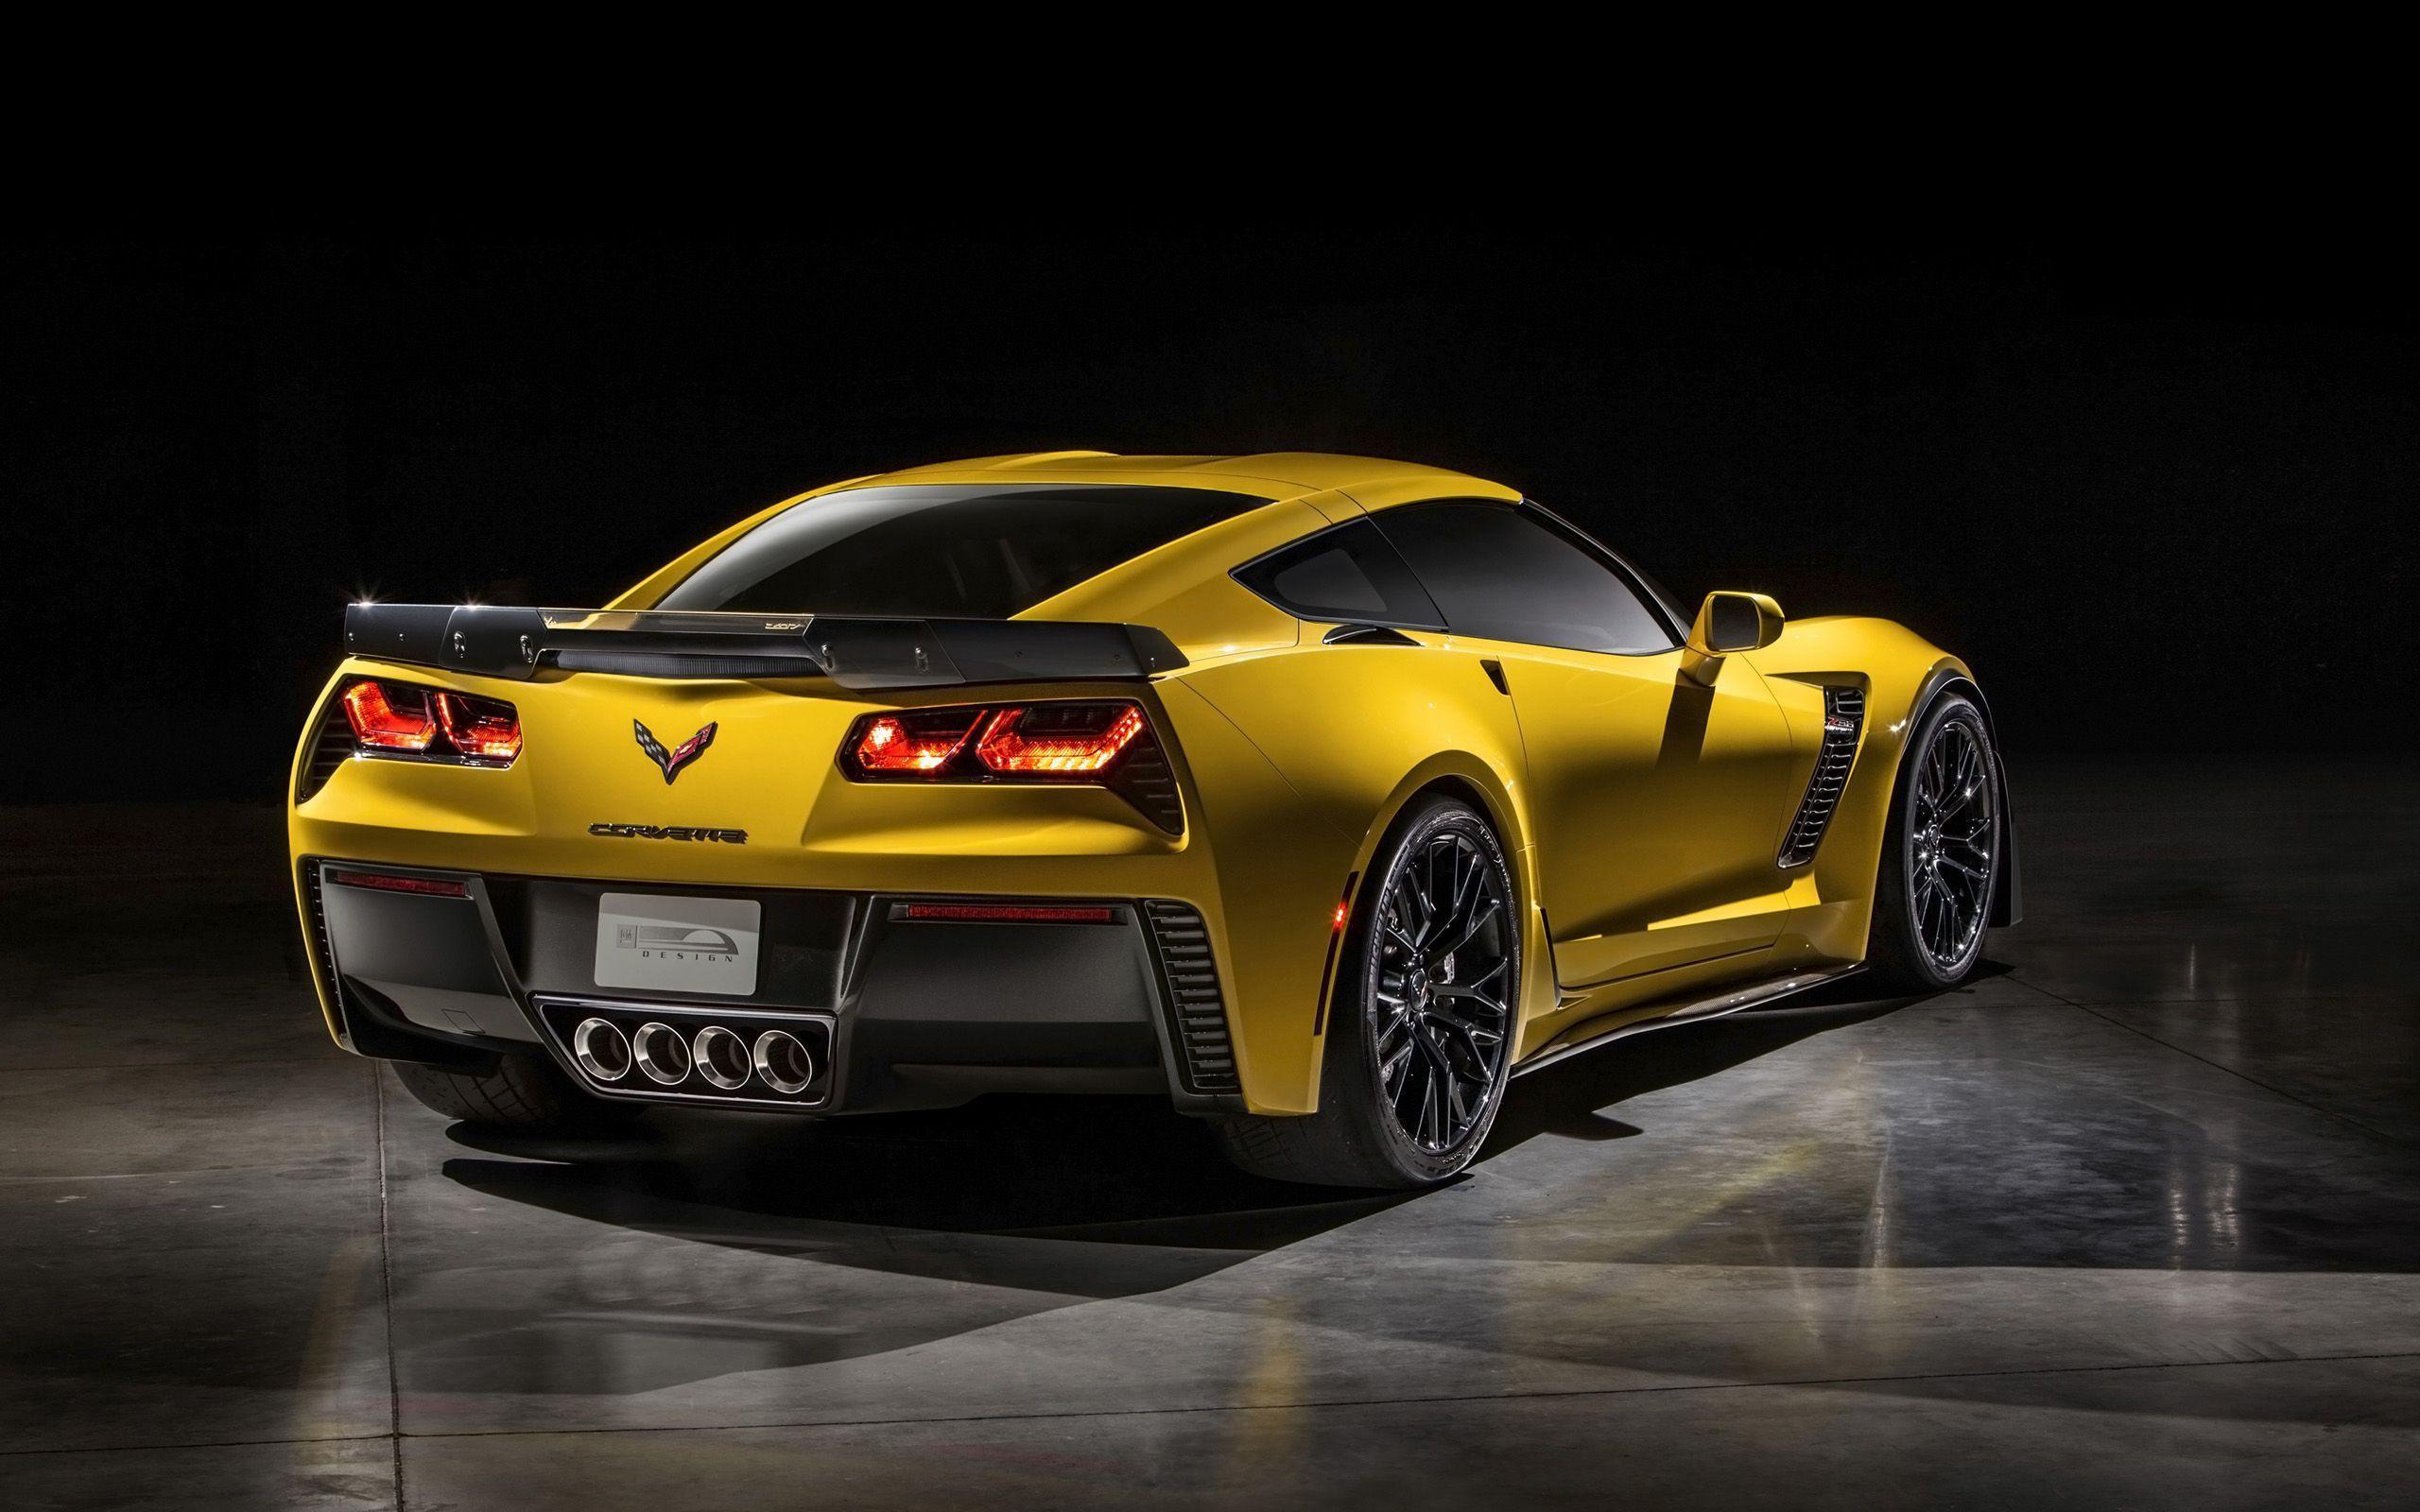 corvette wallpaper hd - photo #30